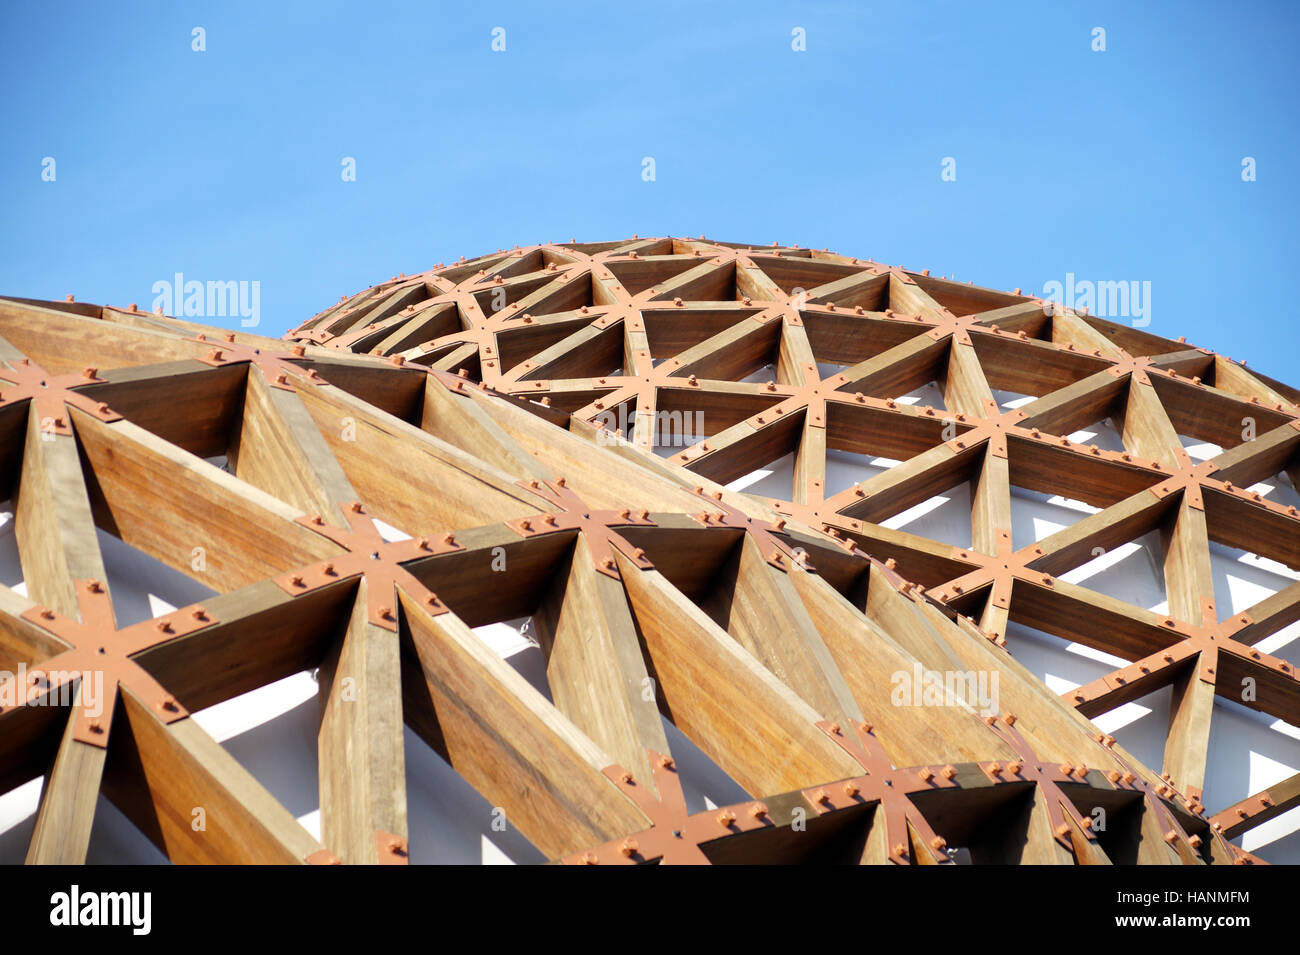 Whilst Clt Is Very Much A Relatively Modern Construction Material Glulam Has Been With Us For Longer Indeed One Of The Earliest Still Standing